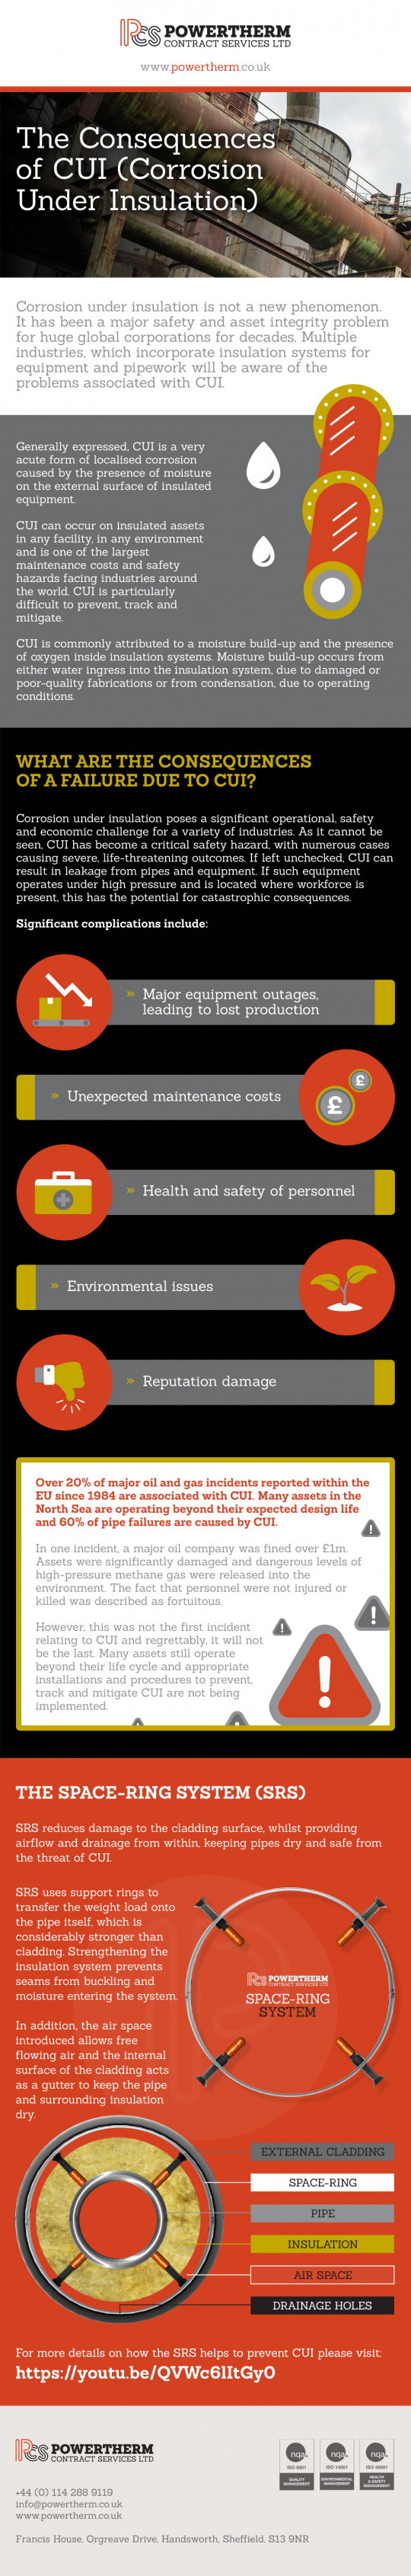 The Consequences of CUI (Corrosion Under Insulation)